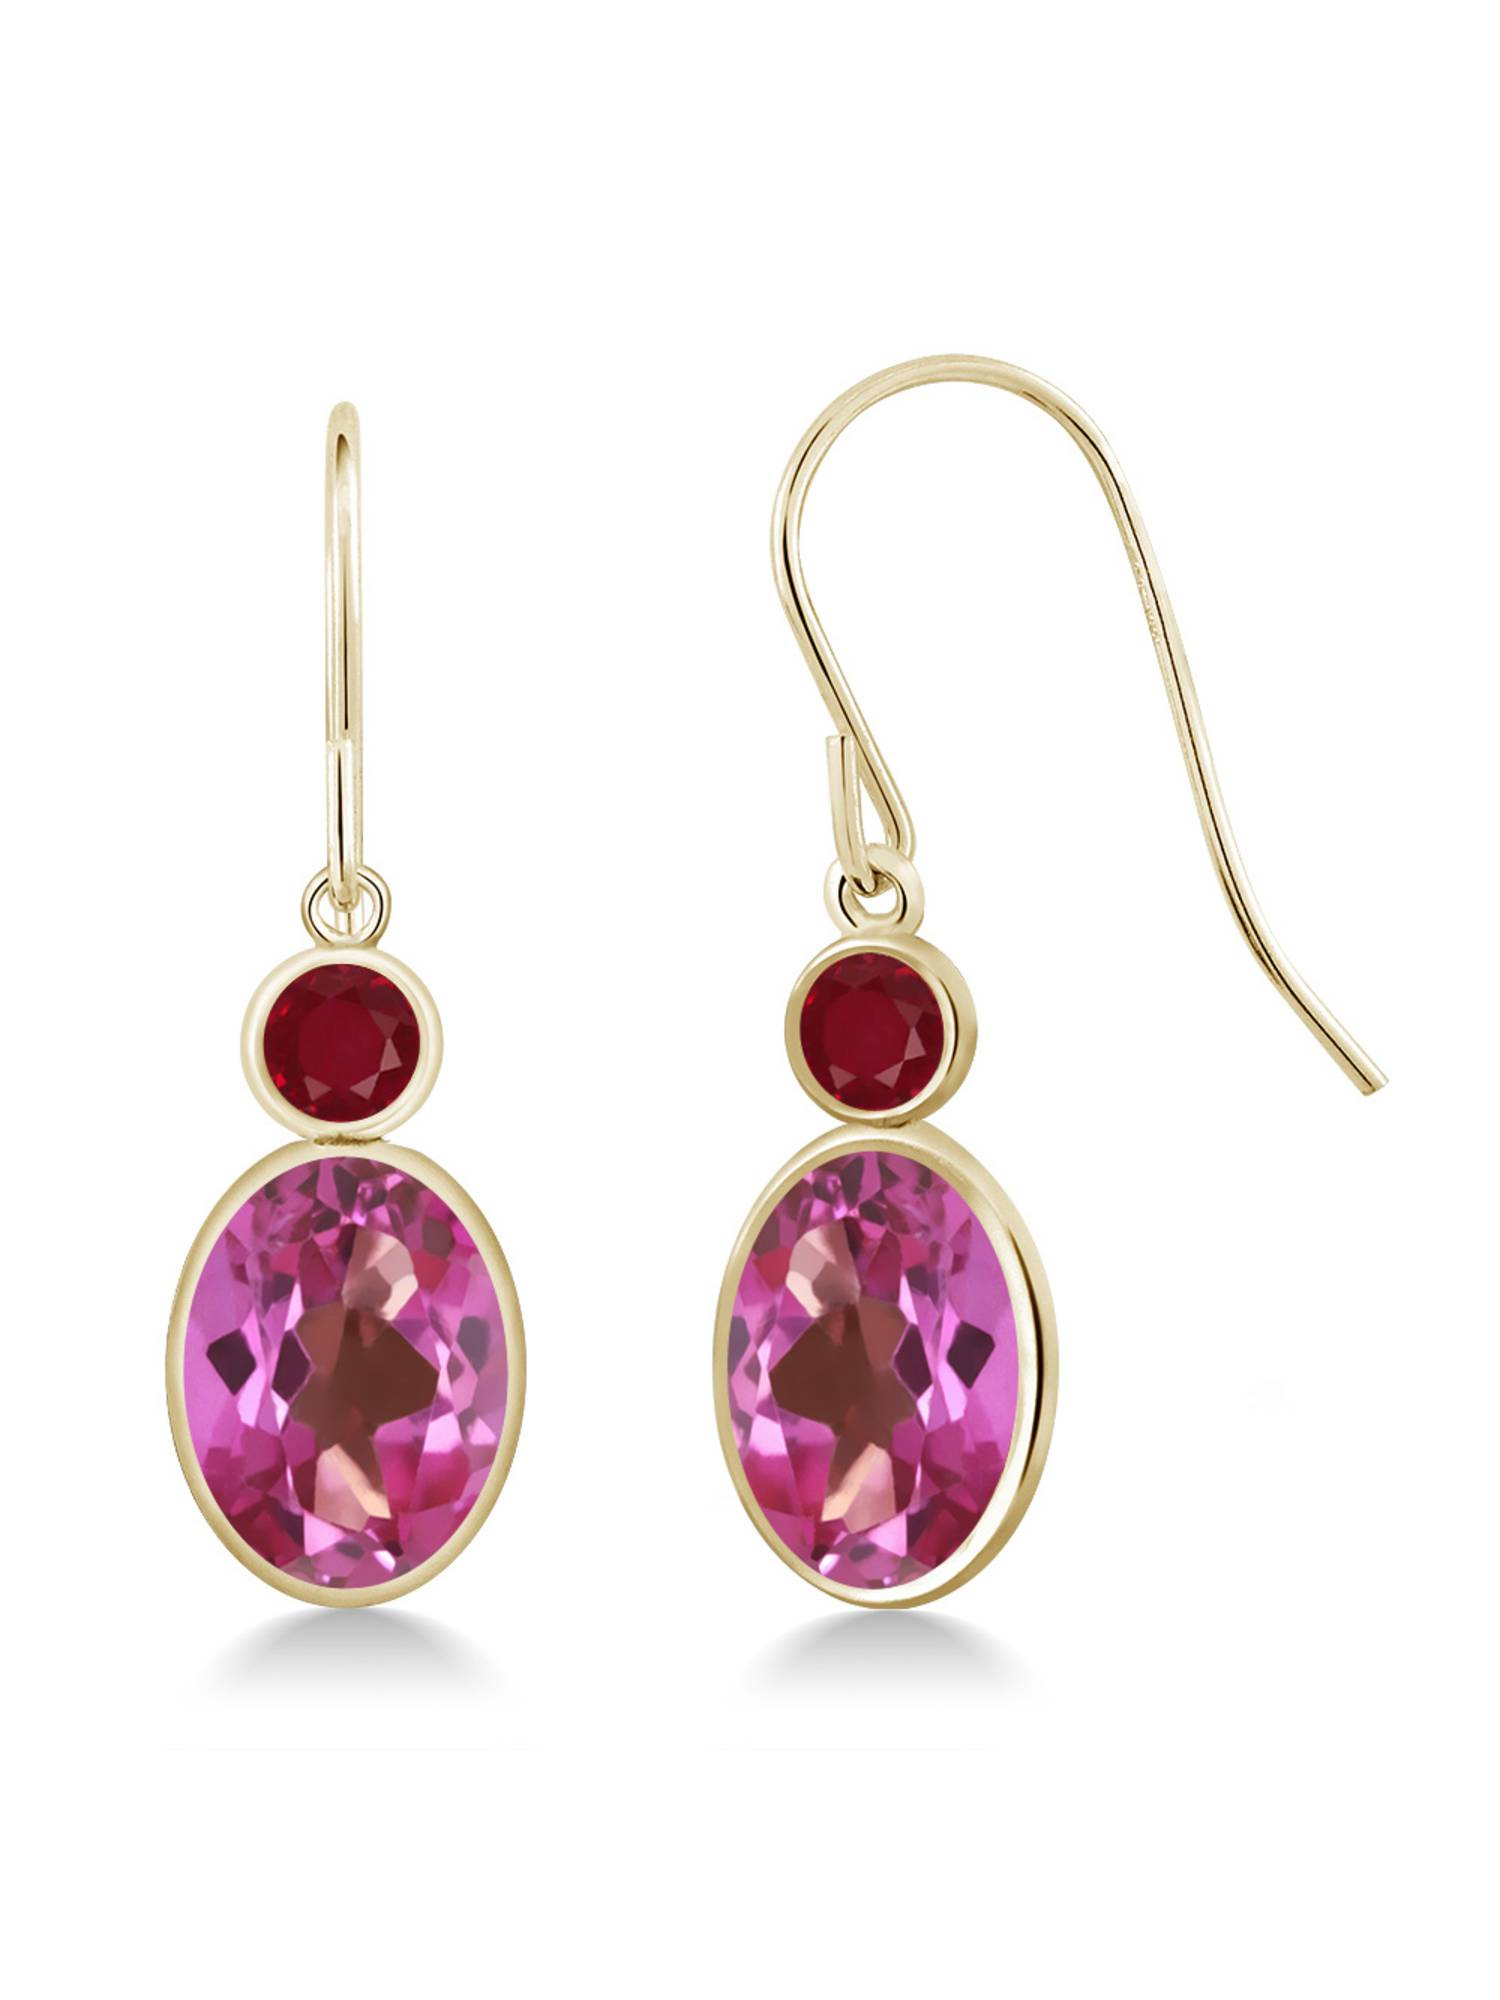 3.28 Ct Oval Pink Mystic Topaz Red Ruby 14K Yellow Gold Earrings by